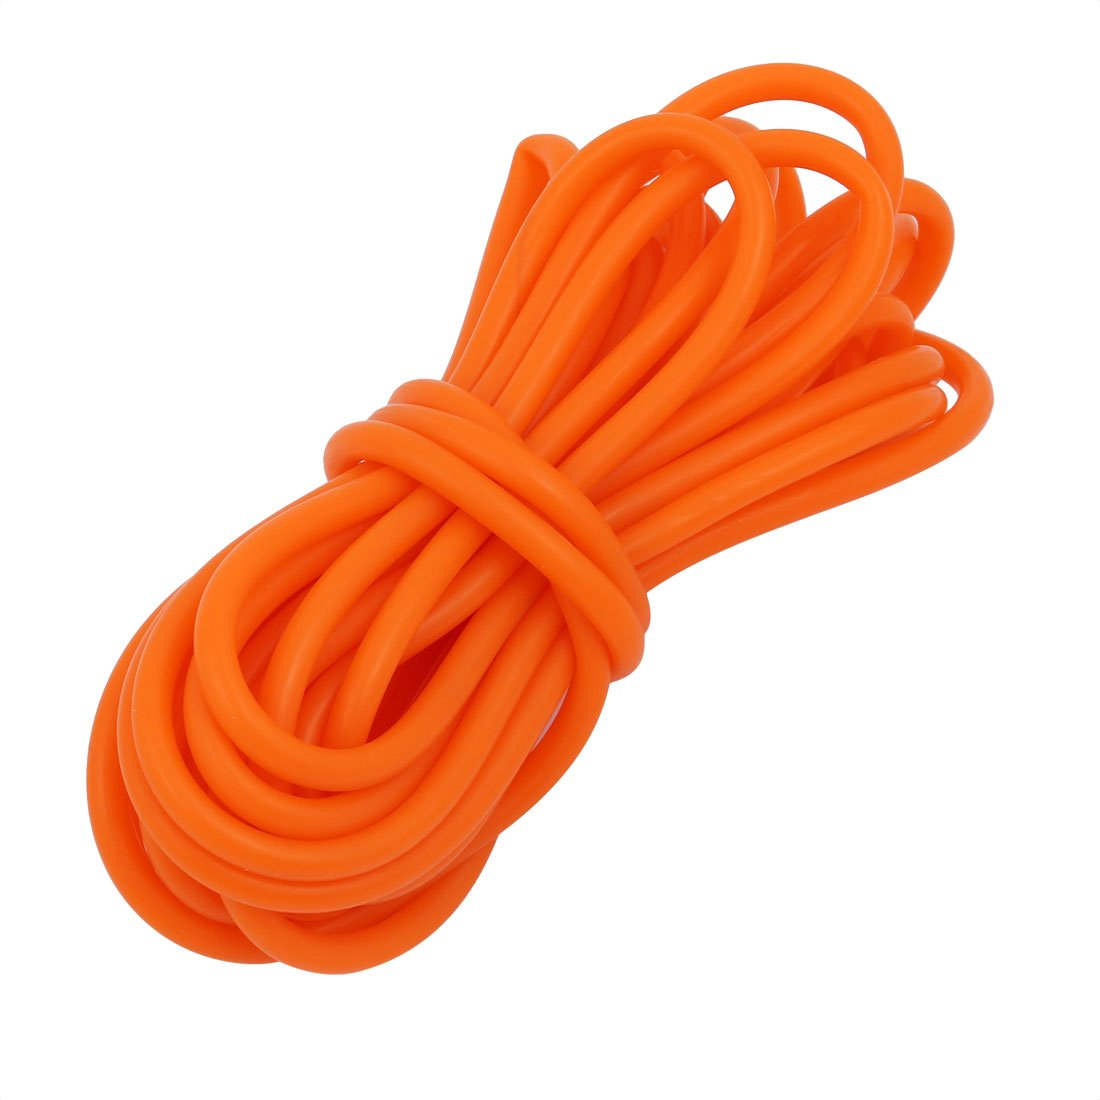 uxcell 3mm x 5mm Dia High Temp Resistant Silicone Tube Hose Rubber Pipe Orange 5M Long